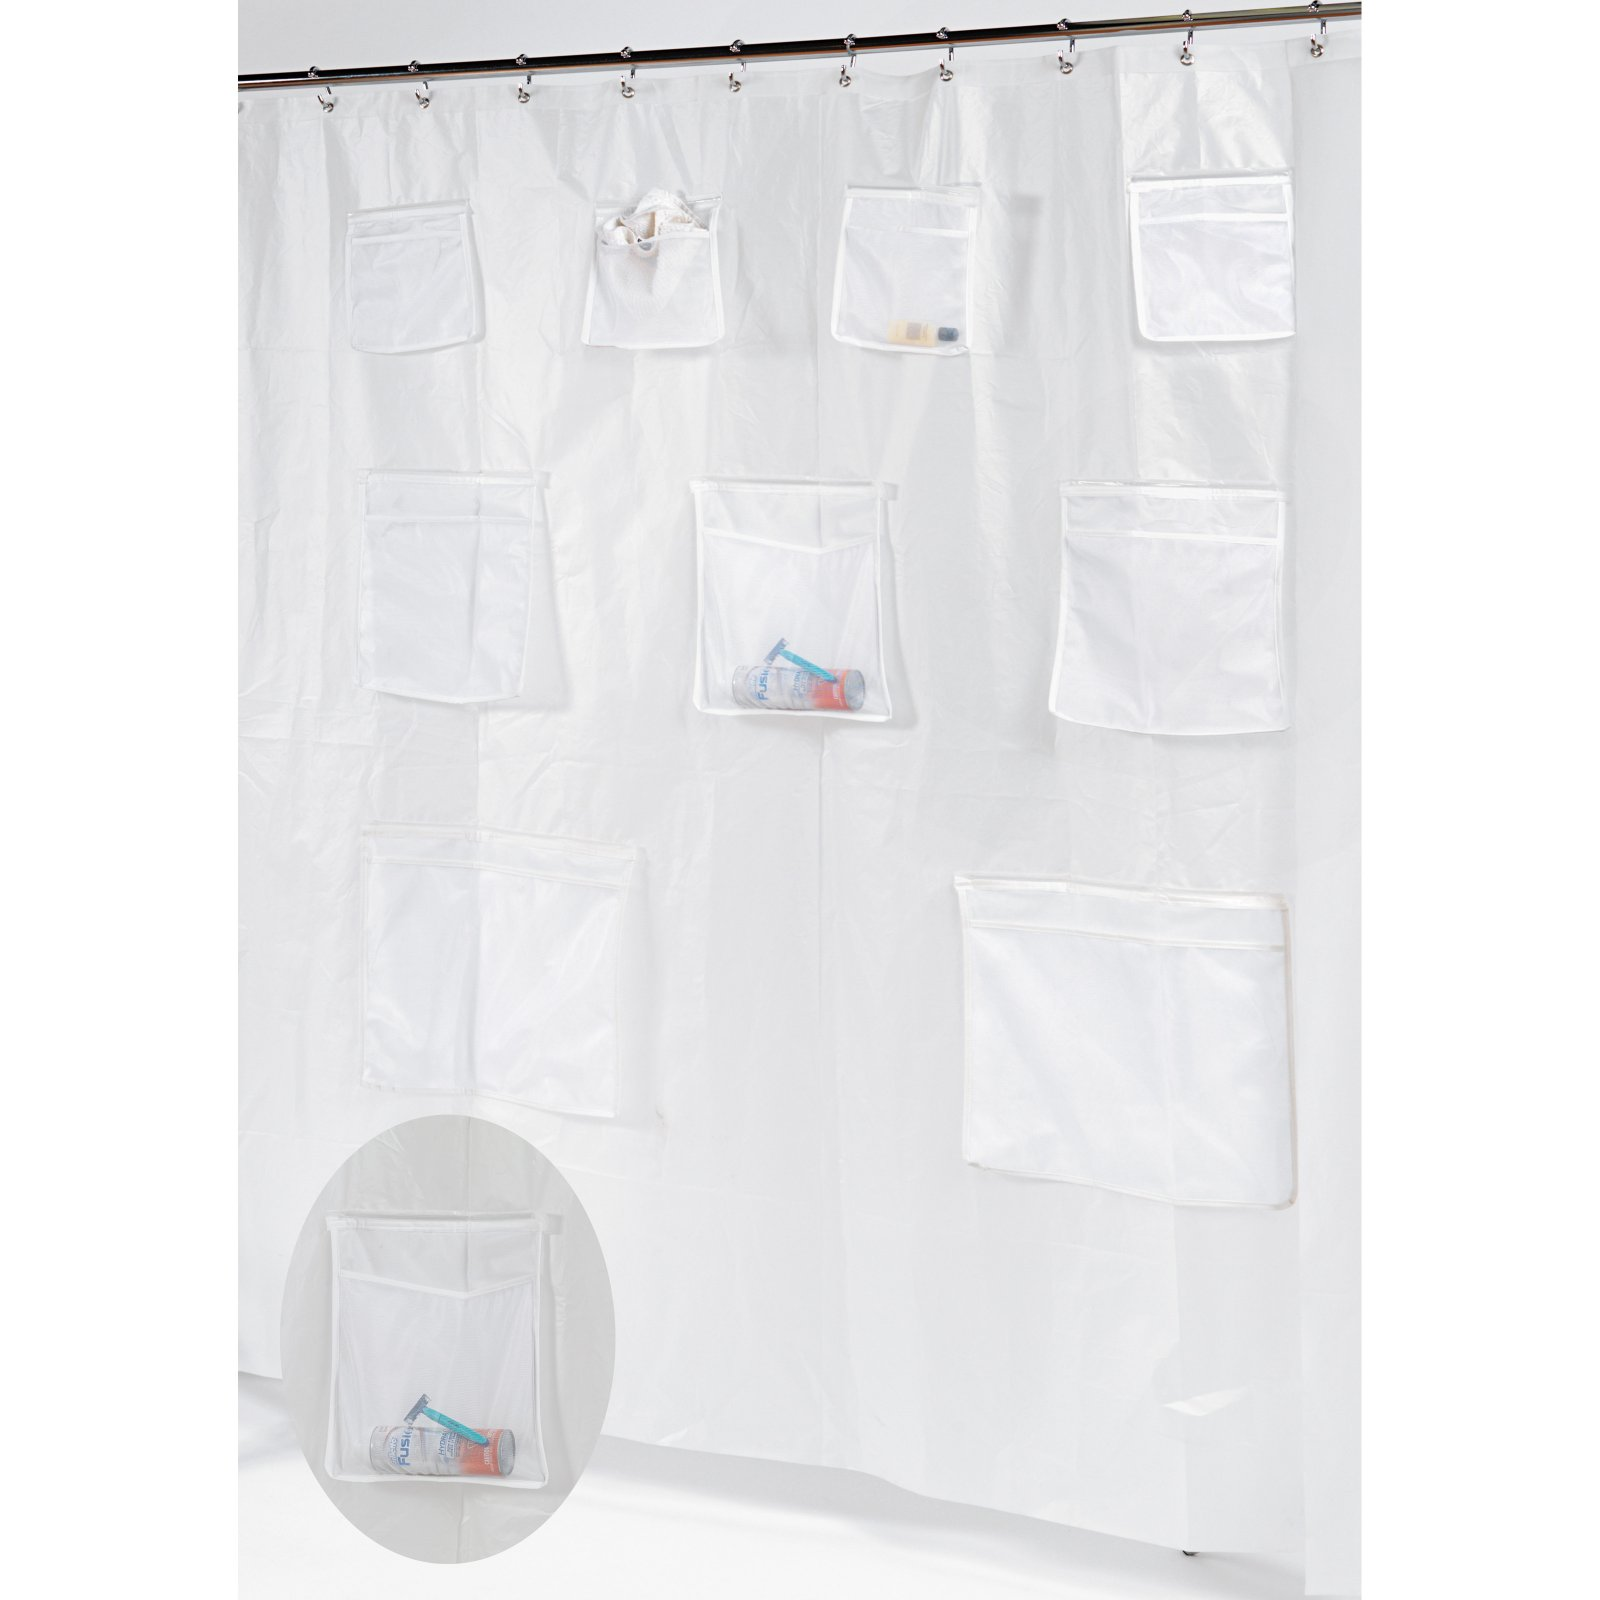 Carnation Home Fashions Pockets PEVA Shower Curtain/Liner With 9 Mesh  Storage Pockets